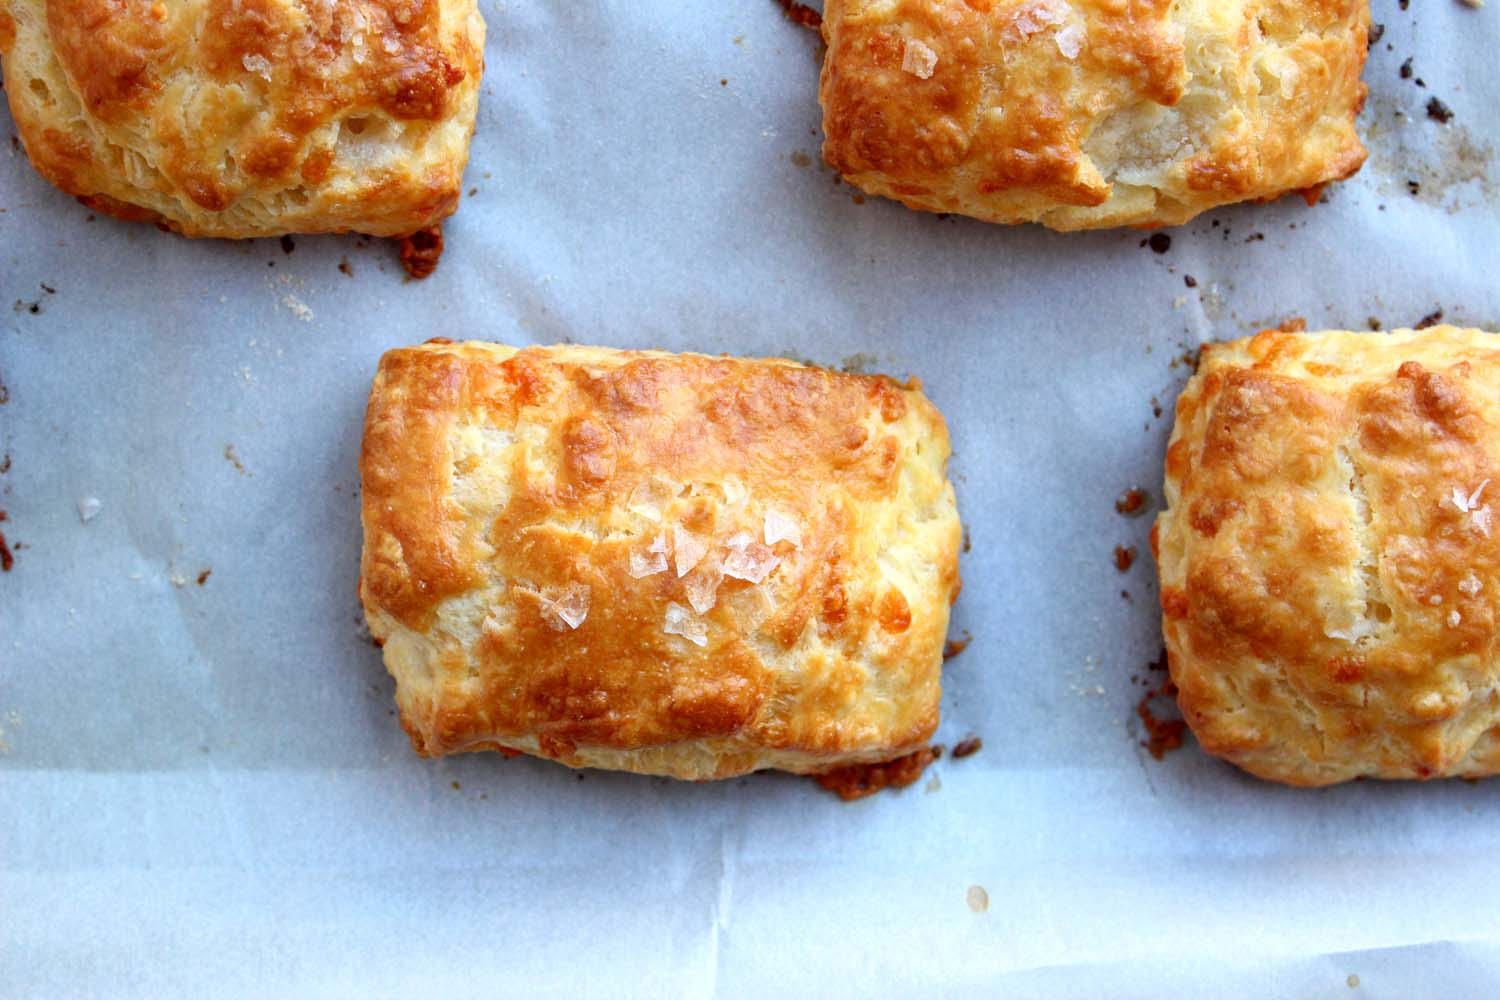 Buttermilk Cheddar Biscuits  | Image:  Laura Messersmith